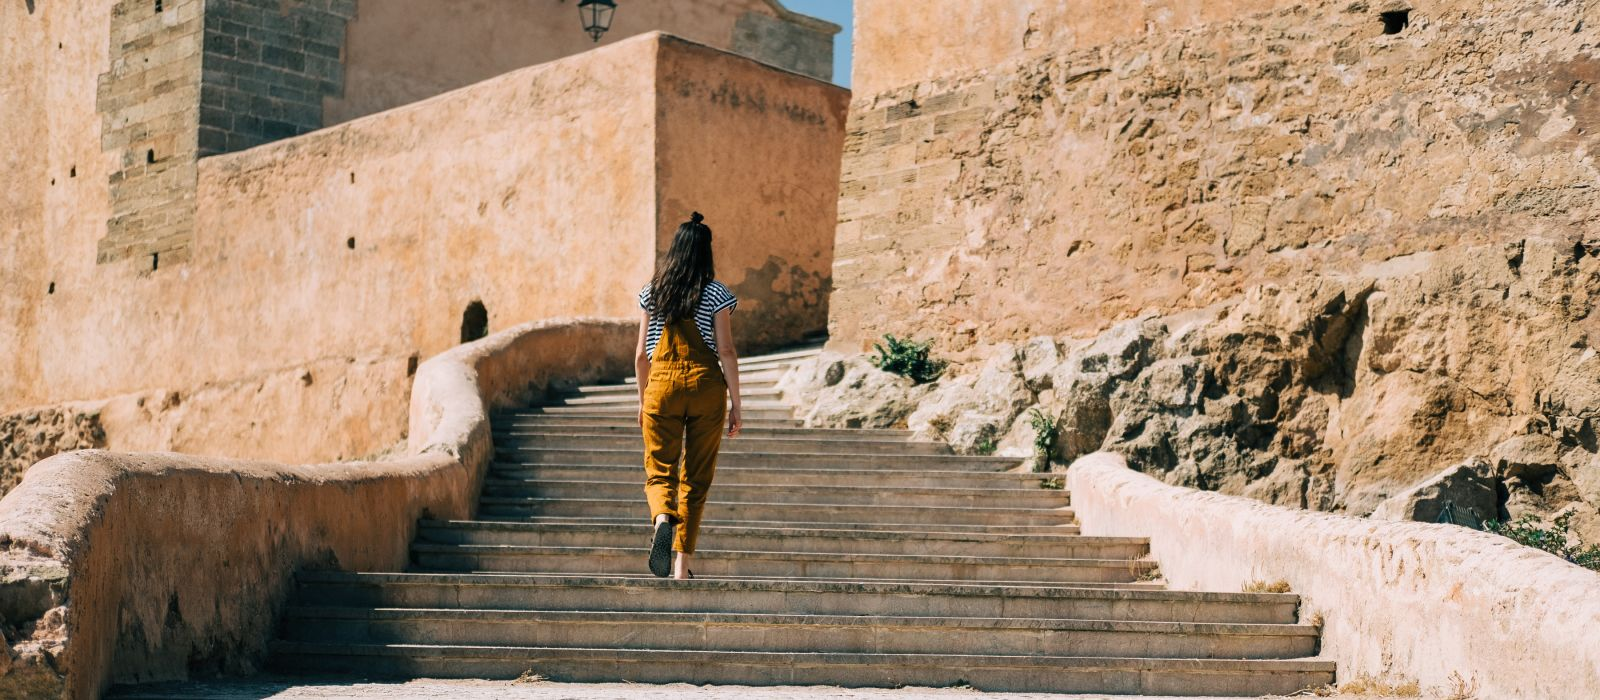 Girl explores ancient walled fortress known as the Kasbah des Oudayas in Morocco